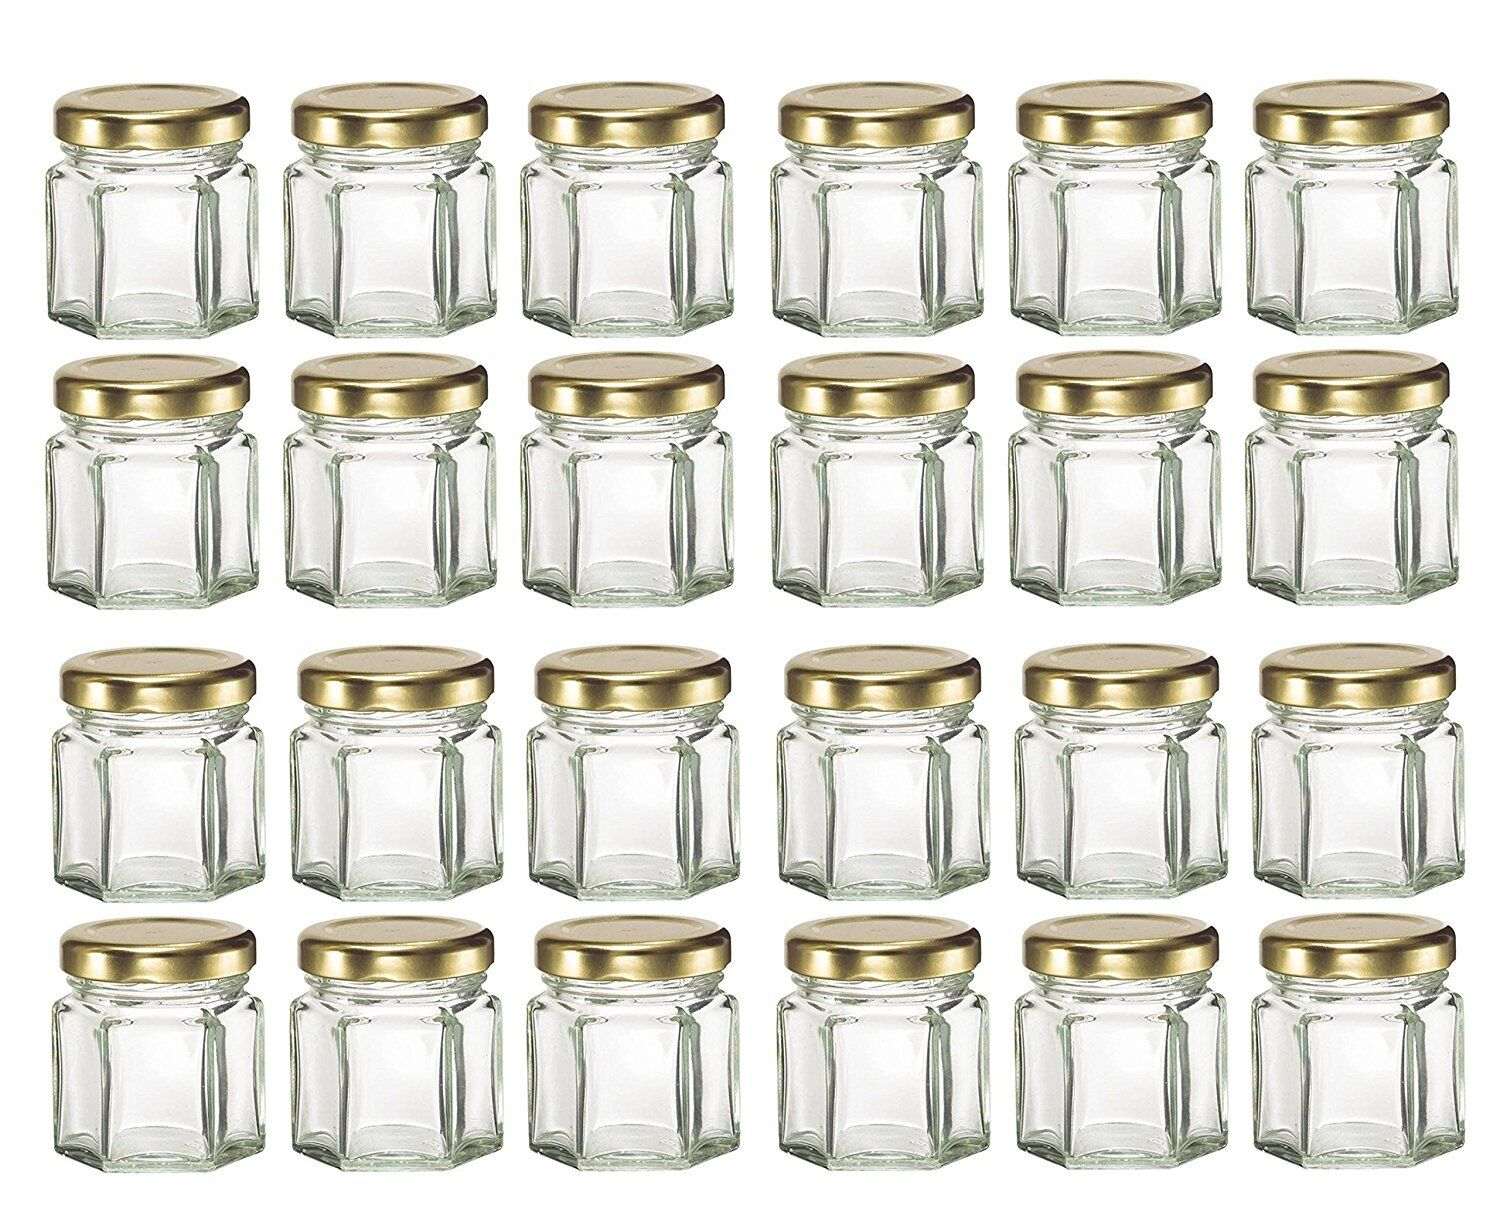 Nakpunar 24 pcs 1.5 oz Mini Hexagon Glass Jars with Gold Pla